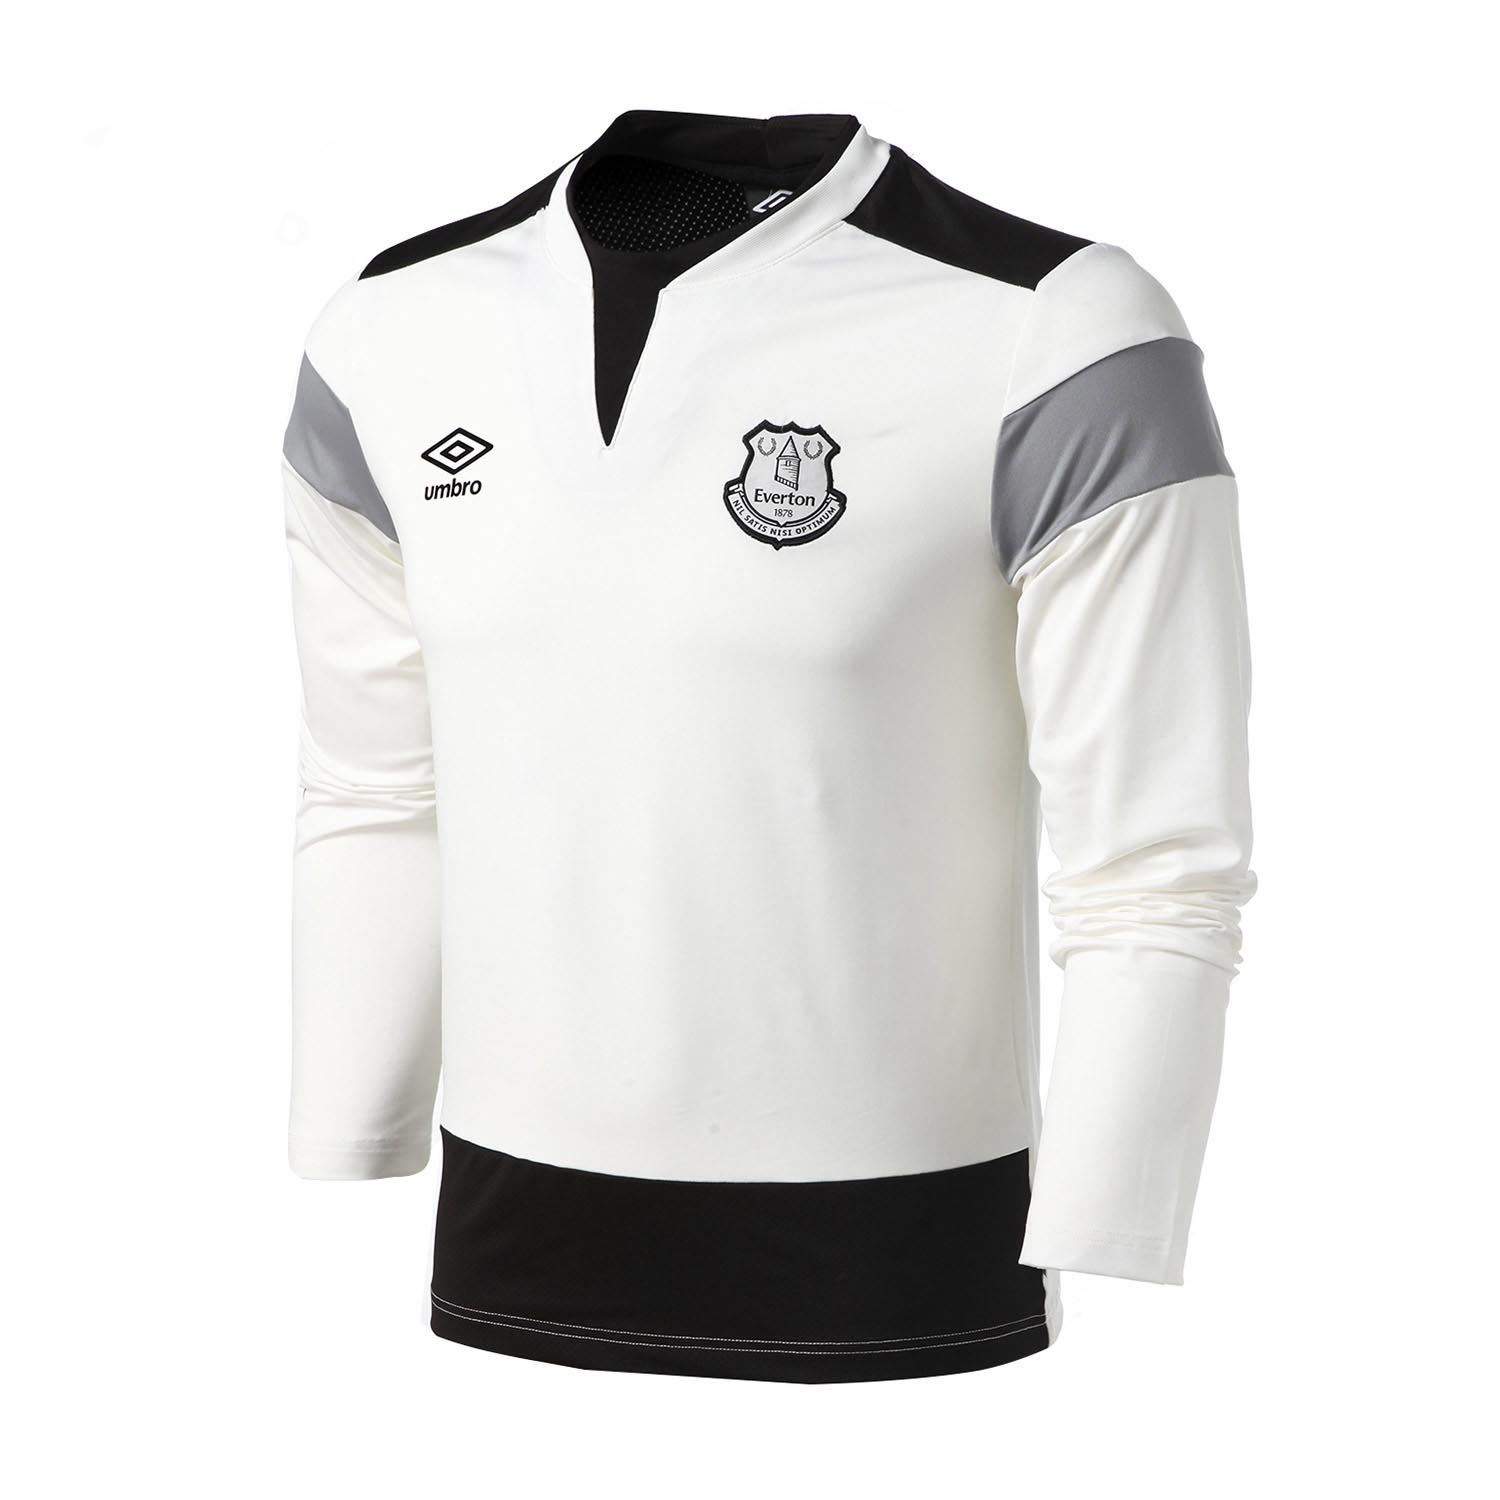 Umbro Men Everton Long Sleeved shirt Running Shirt Men Soccer Jerseys T-shirts Tops Slim Fit Shirt Quick Dry Sportswear Ucb63019 srjtek 9 6 for huawei mediapad t1 10 pro lte t1 a21l t1 a22l t1 a21w lcd display touch screen digitizer glass panel